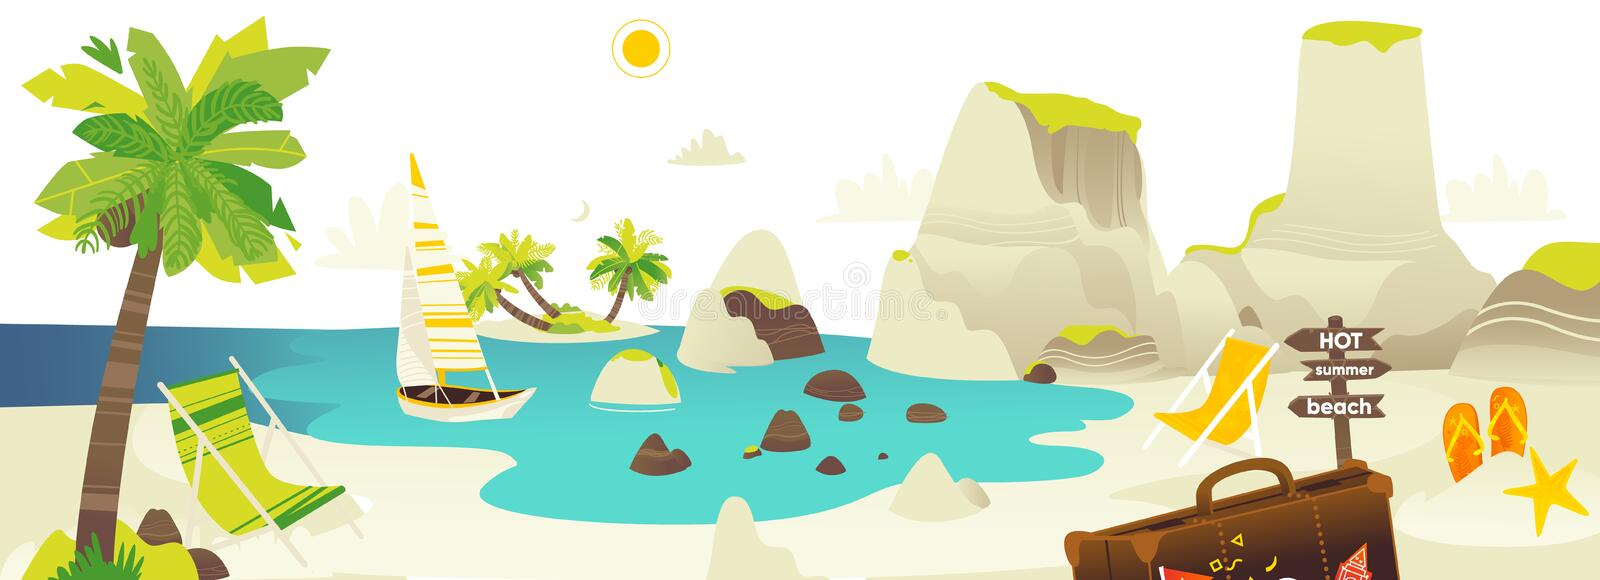 Beach scene banner with summer vacation elements vector illustration